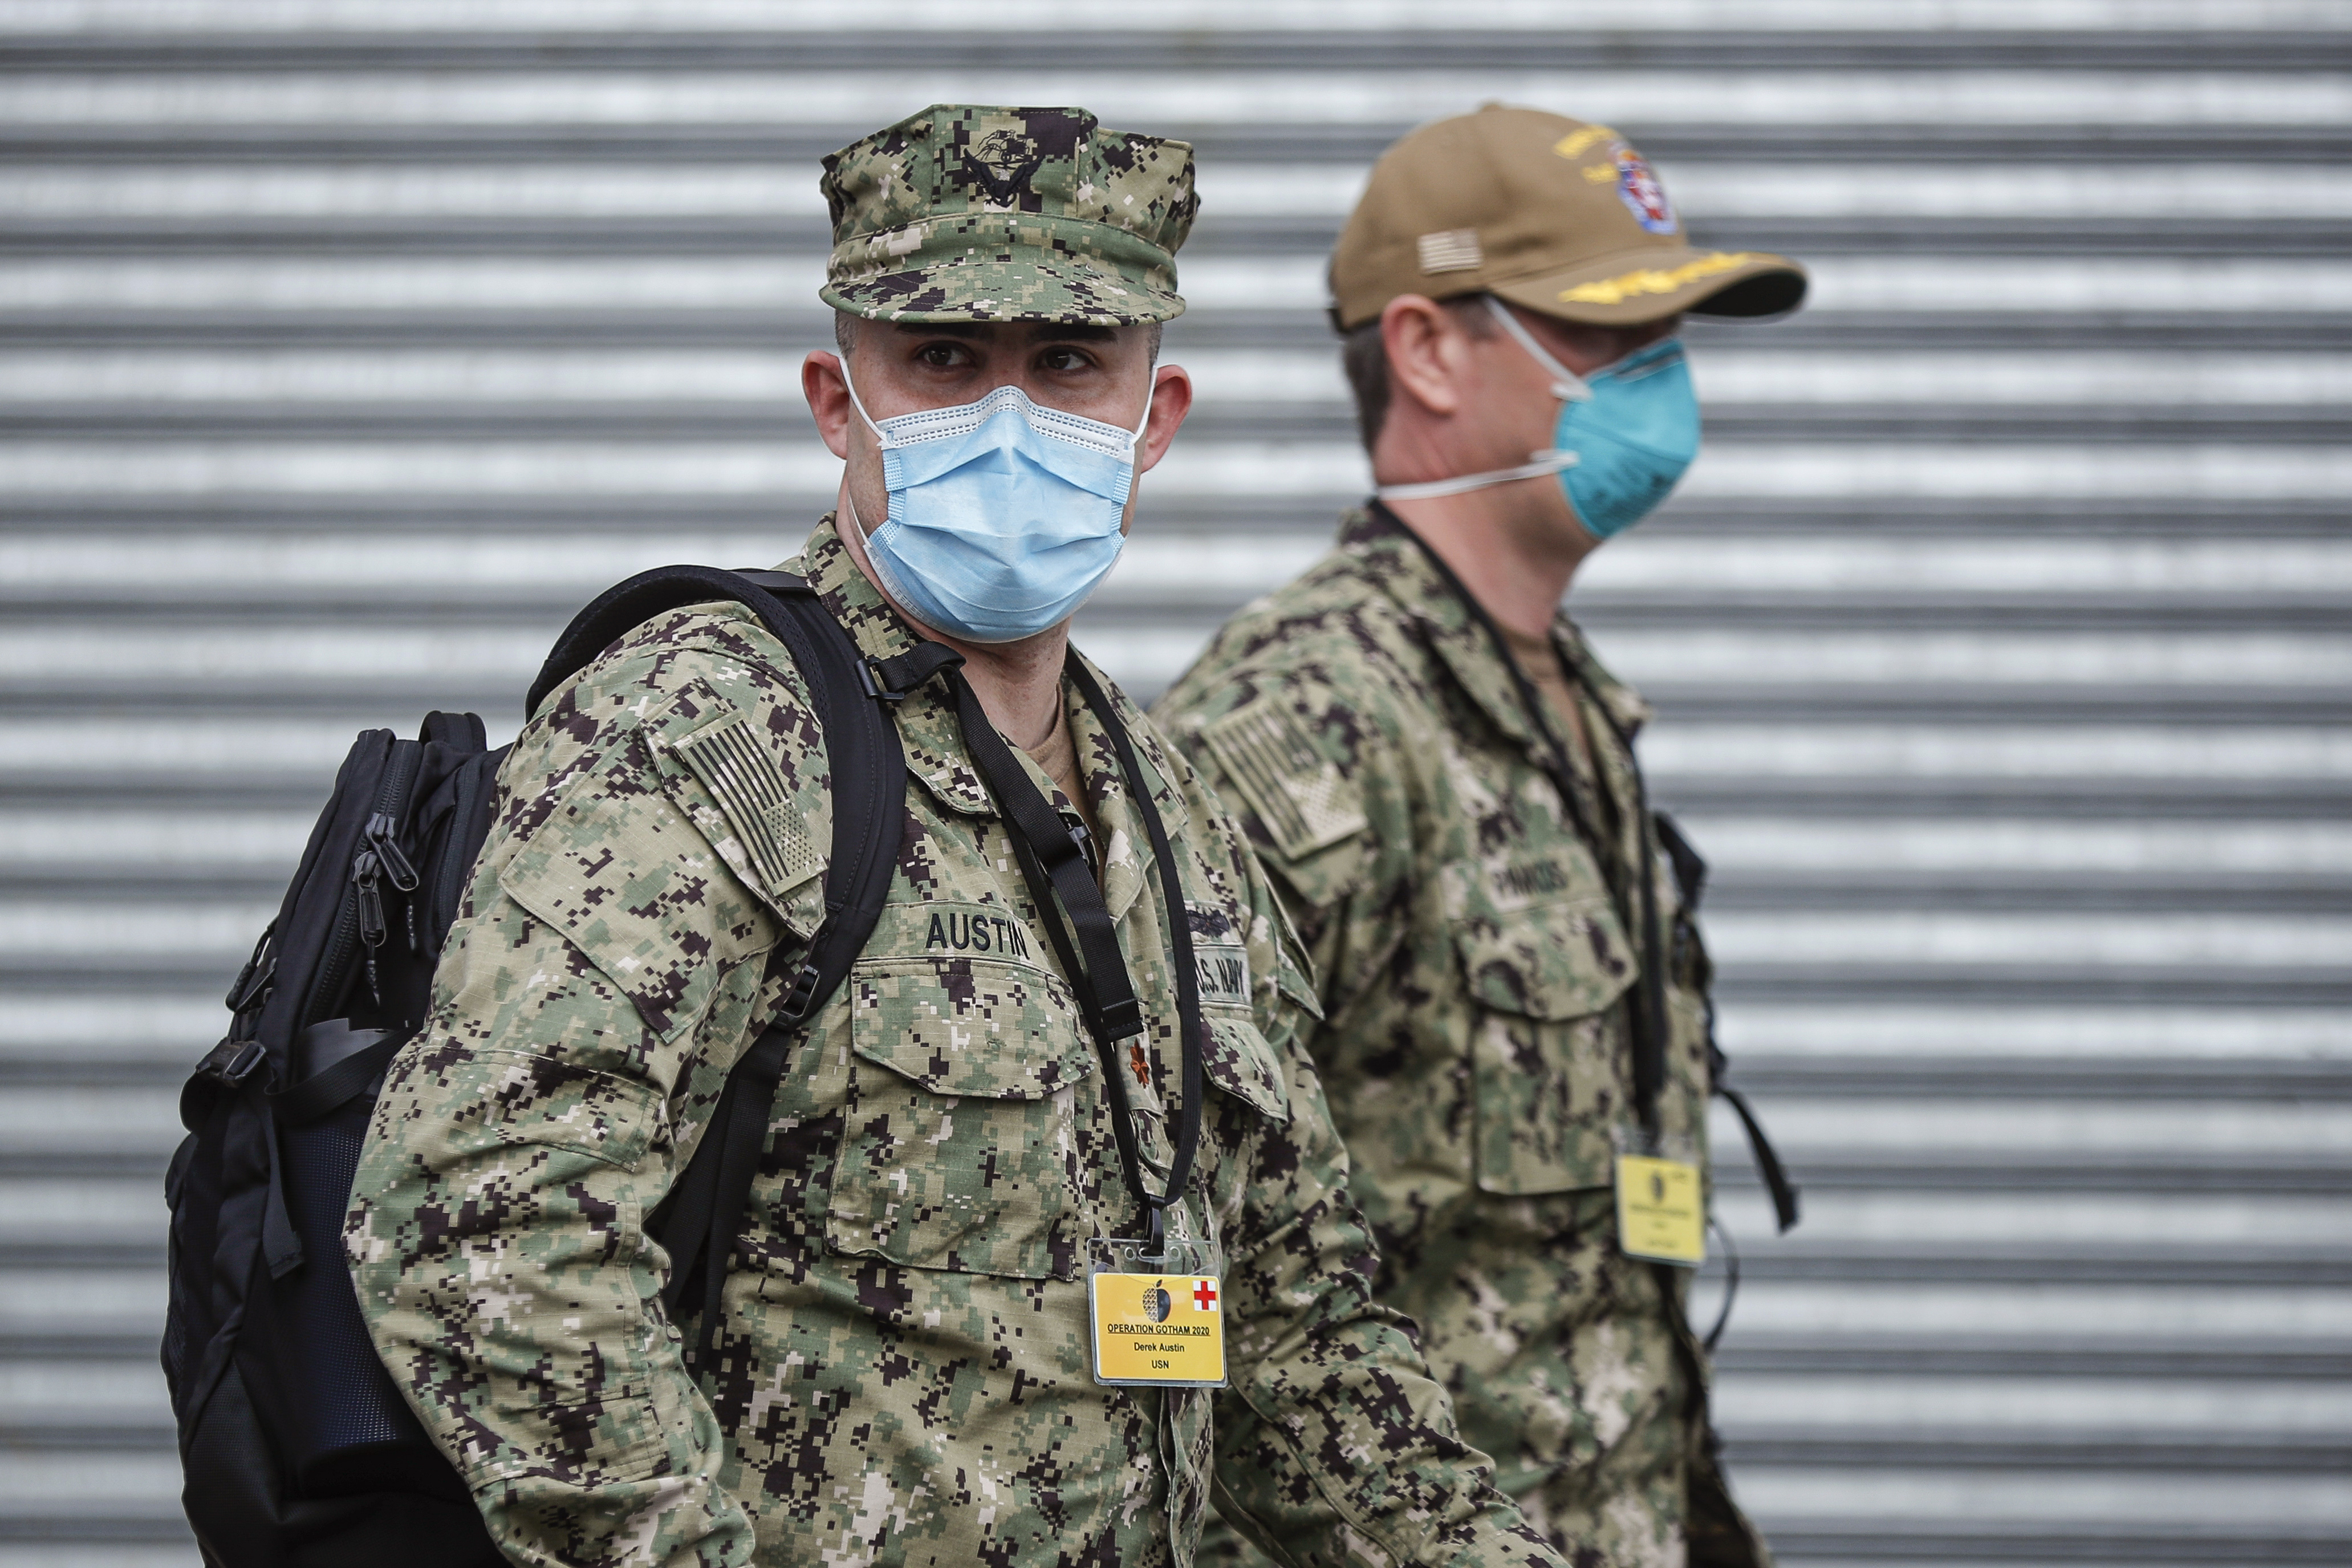 US Navy personnel wearing surgical masks to protect against the coronavirus, arrive at Wyckoff Heights Medical Center, Tuesday, April 7, 2020, in the Brooklyn borough of New York. The new coronavirus causes mild or moderate symptoms for most people, but for some, especially older adults and people with existing health problems, it can cause more severe illness or death. (AP Photo/John Minchillo)